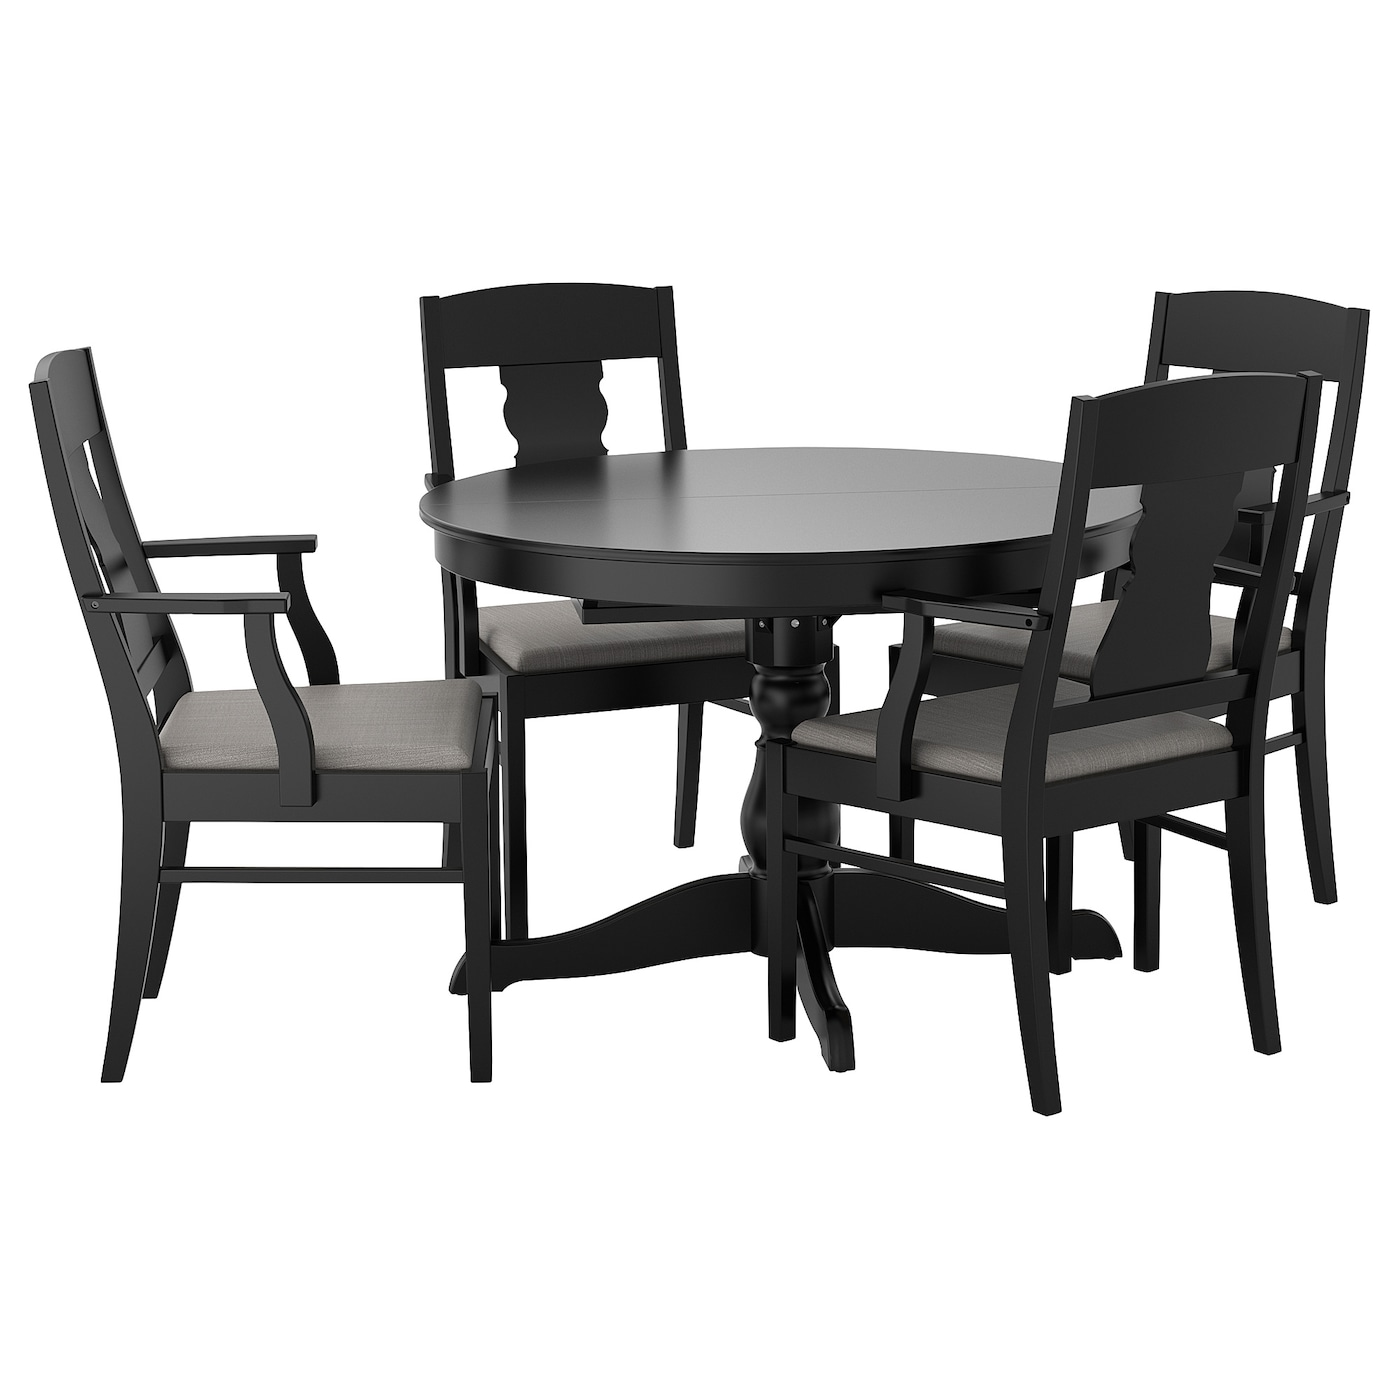 ingatorp ingatorp table et 4 chaises noir 100 155 cm ikea. Black Bedroom Furniture Sets. Home Design Ideas